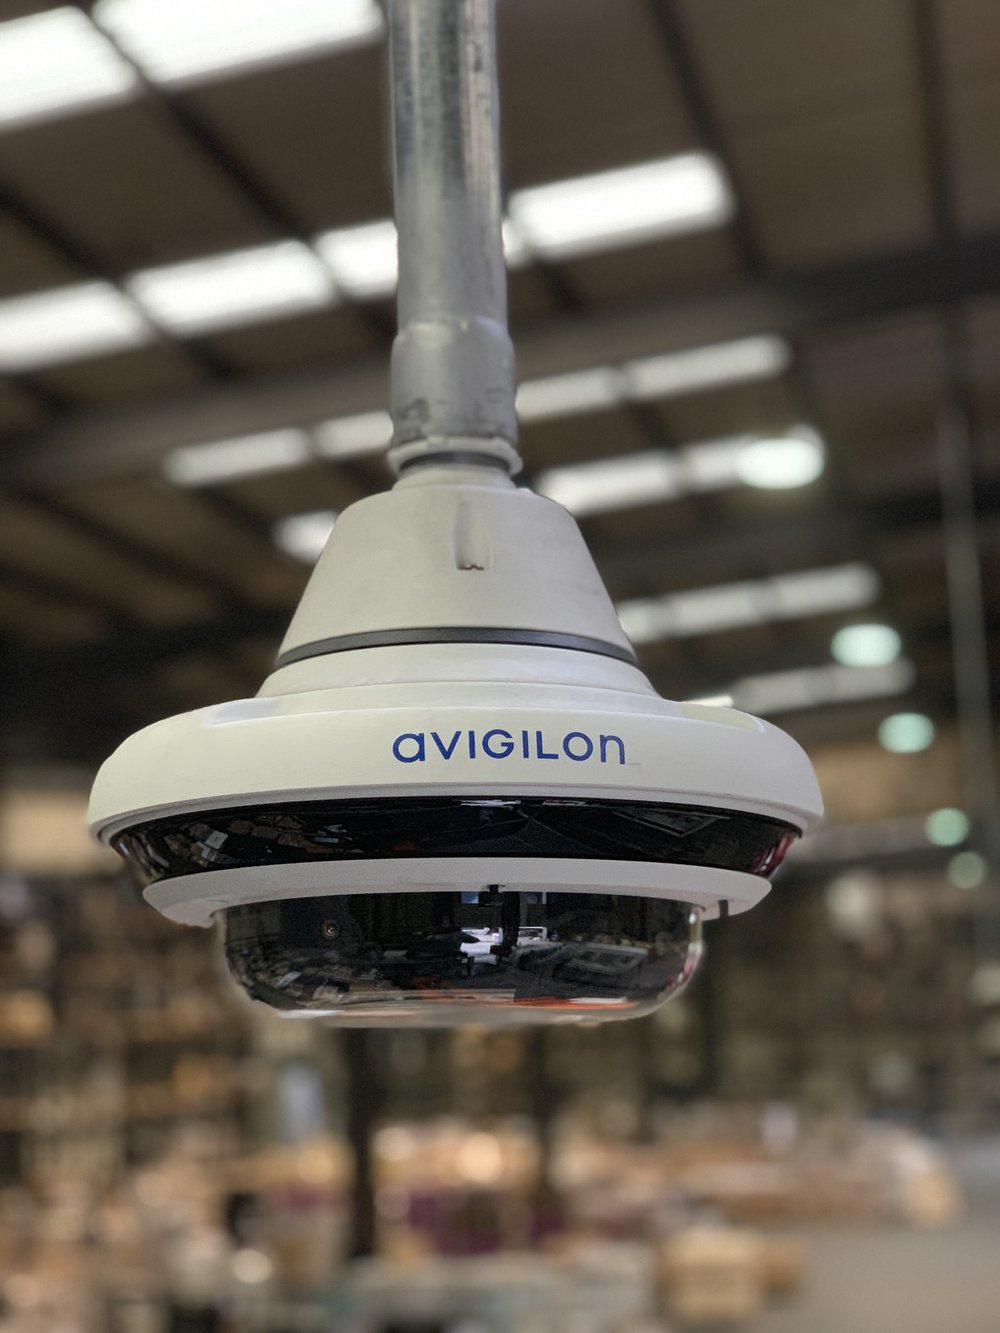 Multisensor by Avigilon